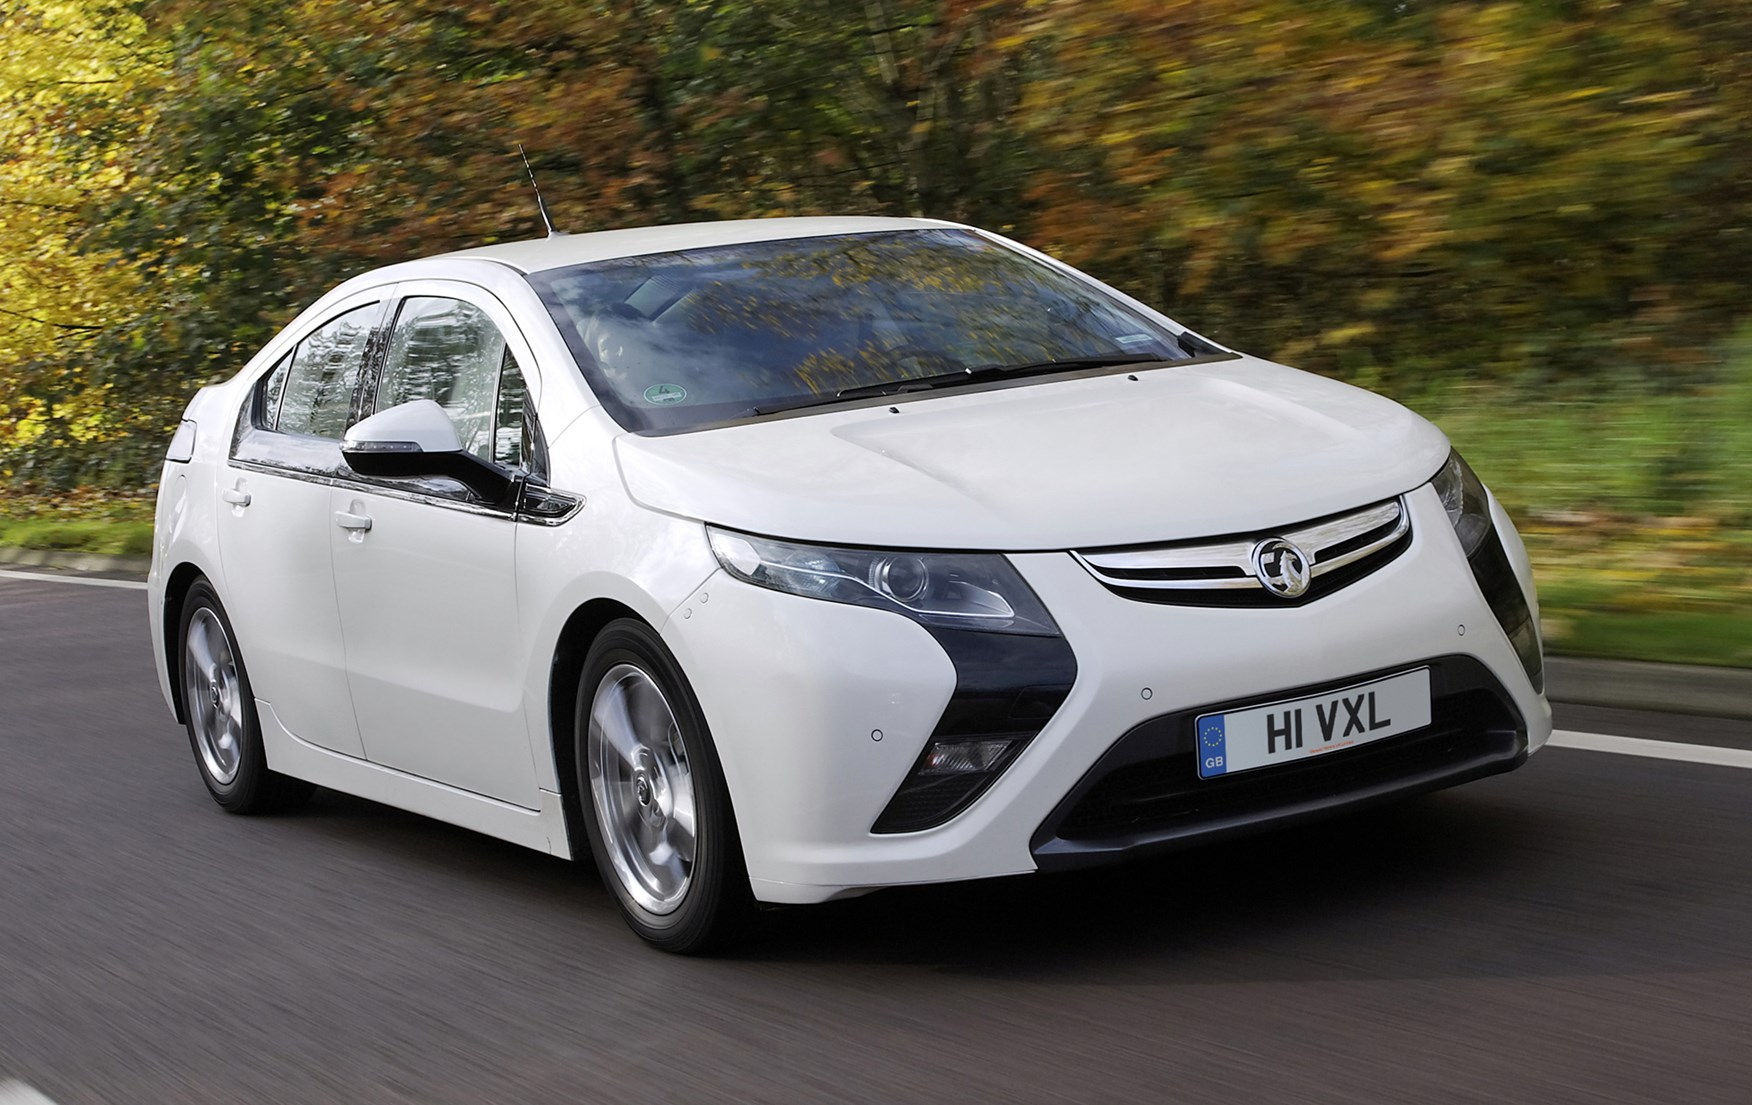 Vauxhall Ampera Hatchback (2012 - 2015) Photos | Parkers